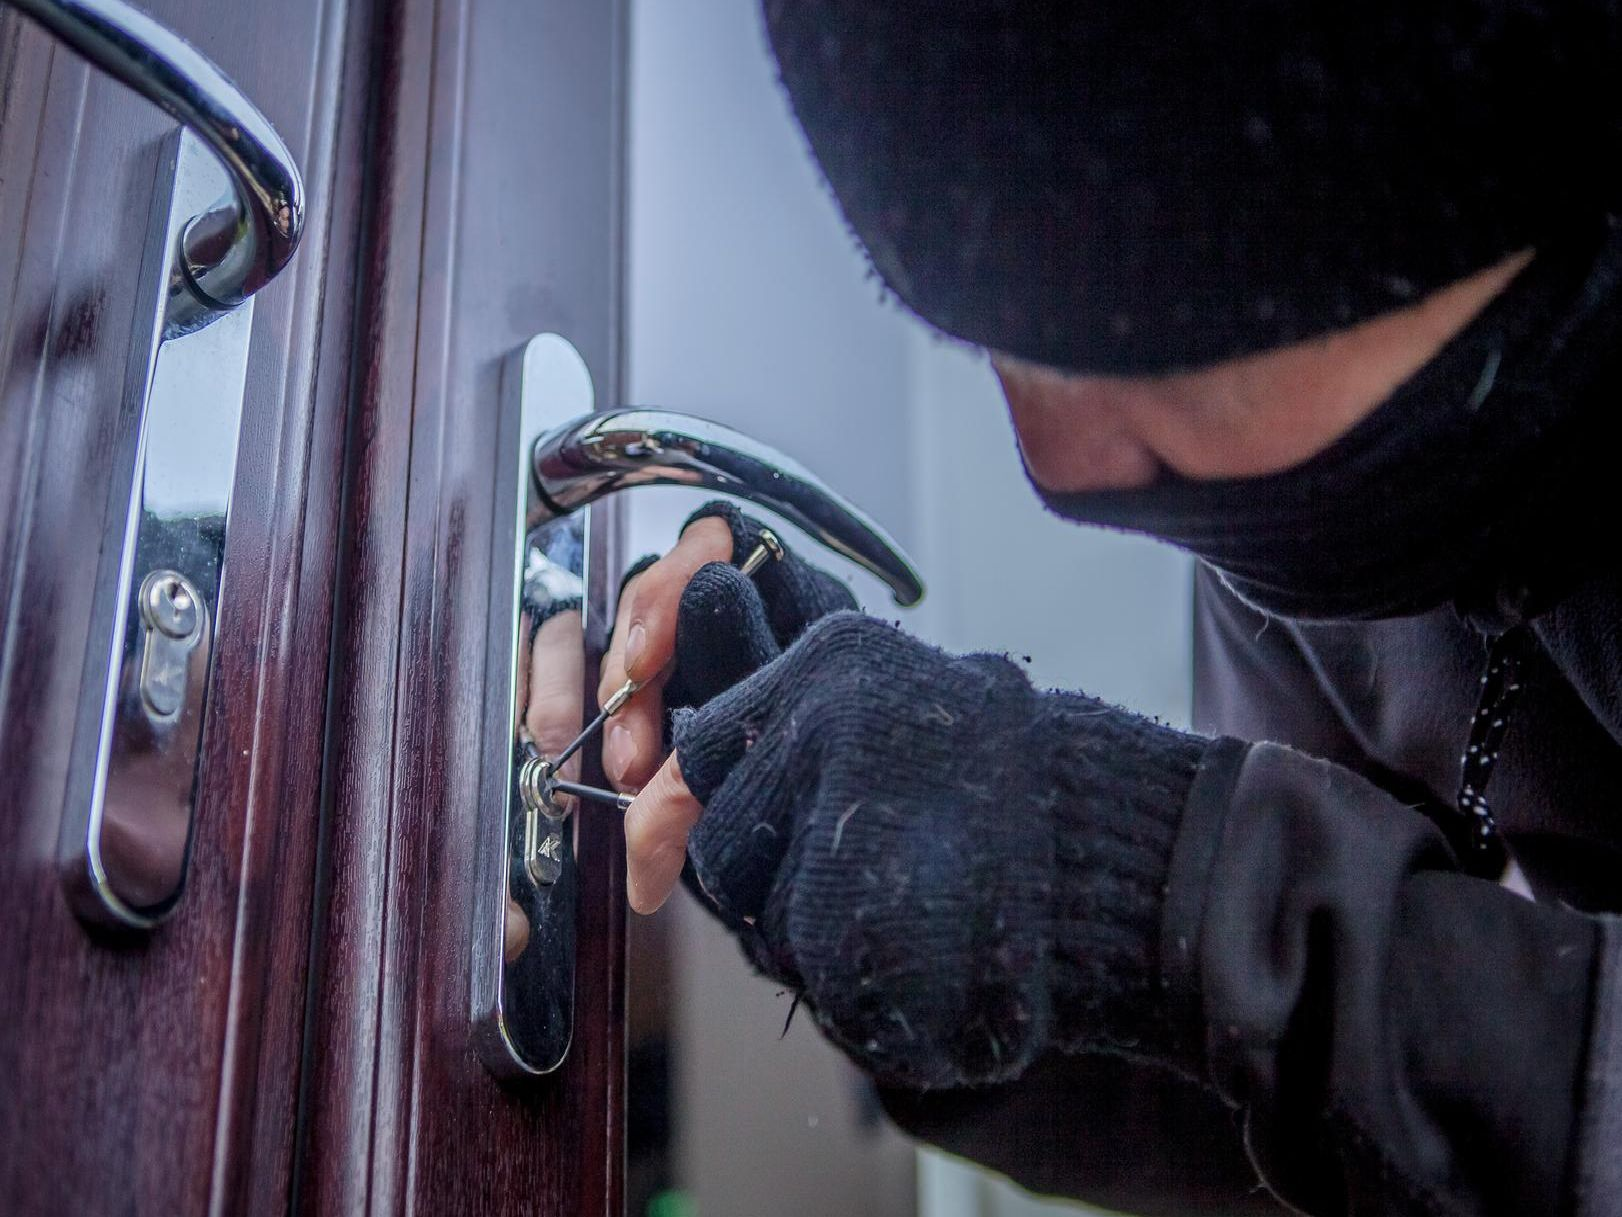 The nine streets with the most reports on burglary in Leeds in 2019 have been revealed.